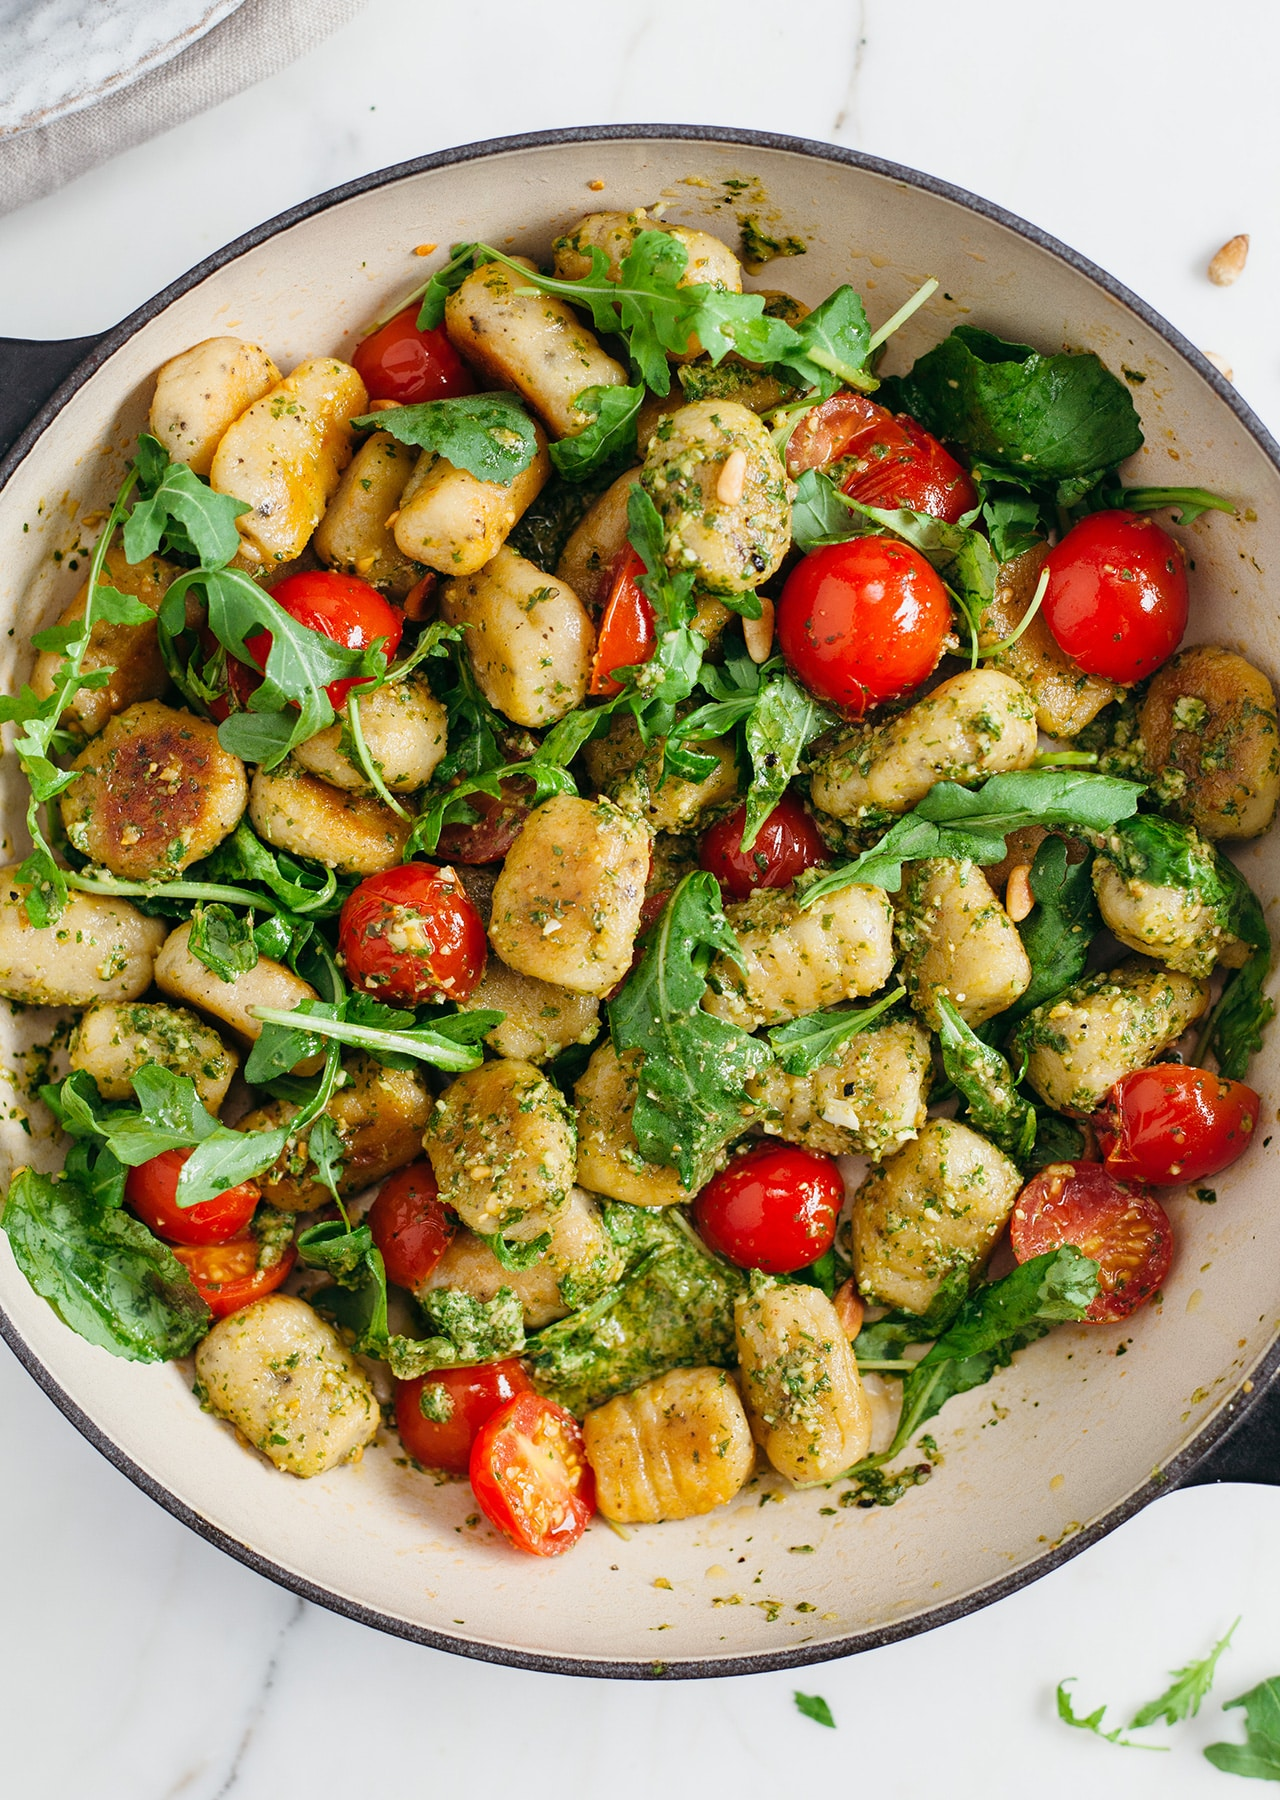 Homemade Vegan Gnocchi Pesto Recipe